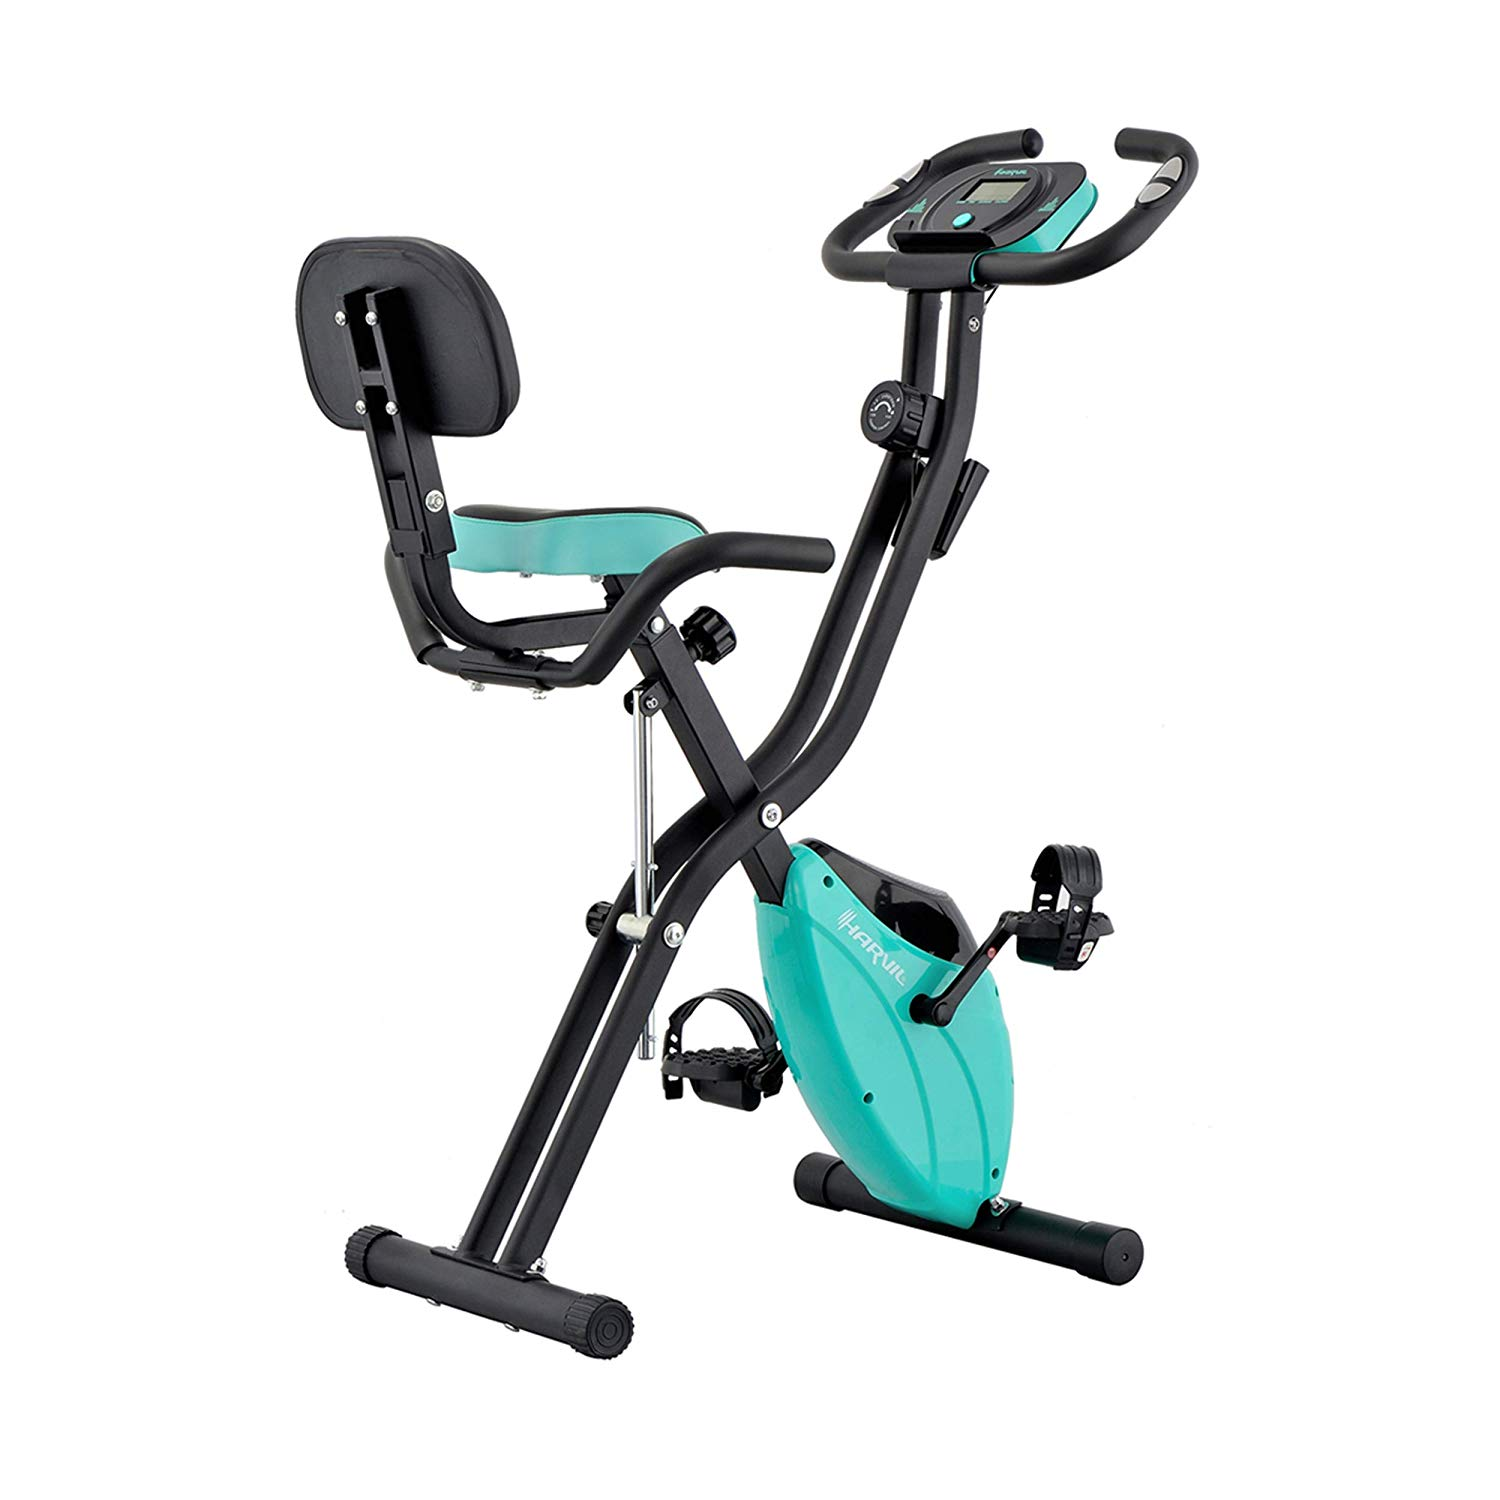 Harvil Foldable Magnetic Peloton Exercise Bike